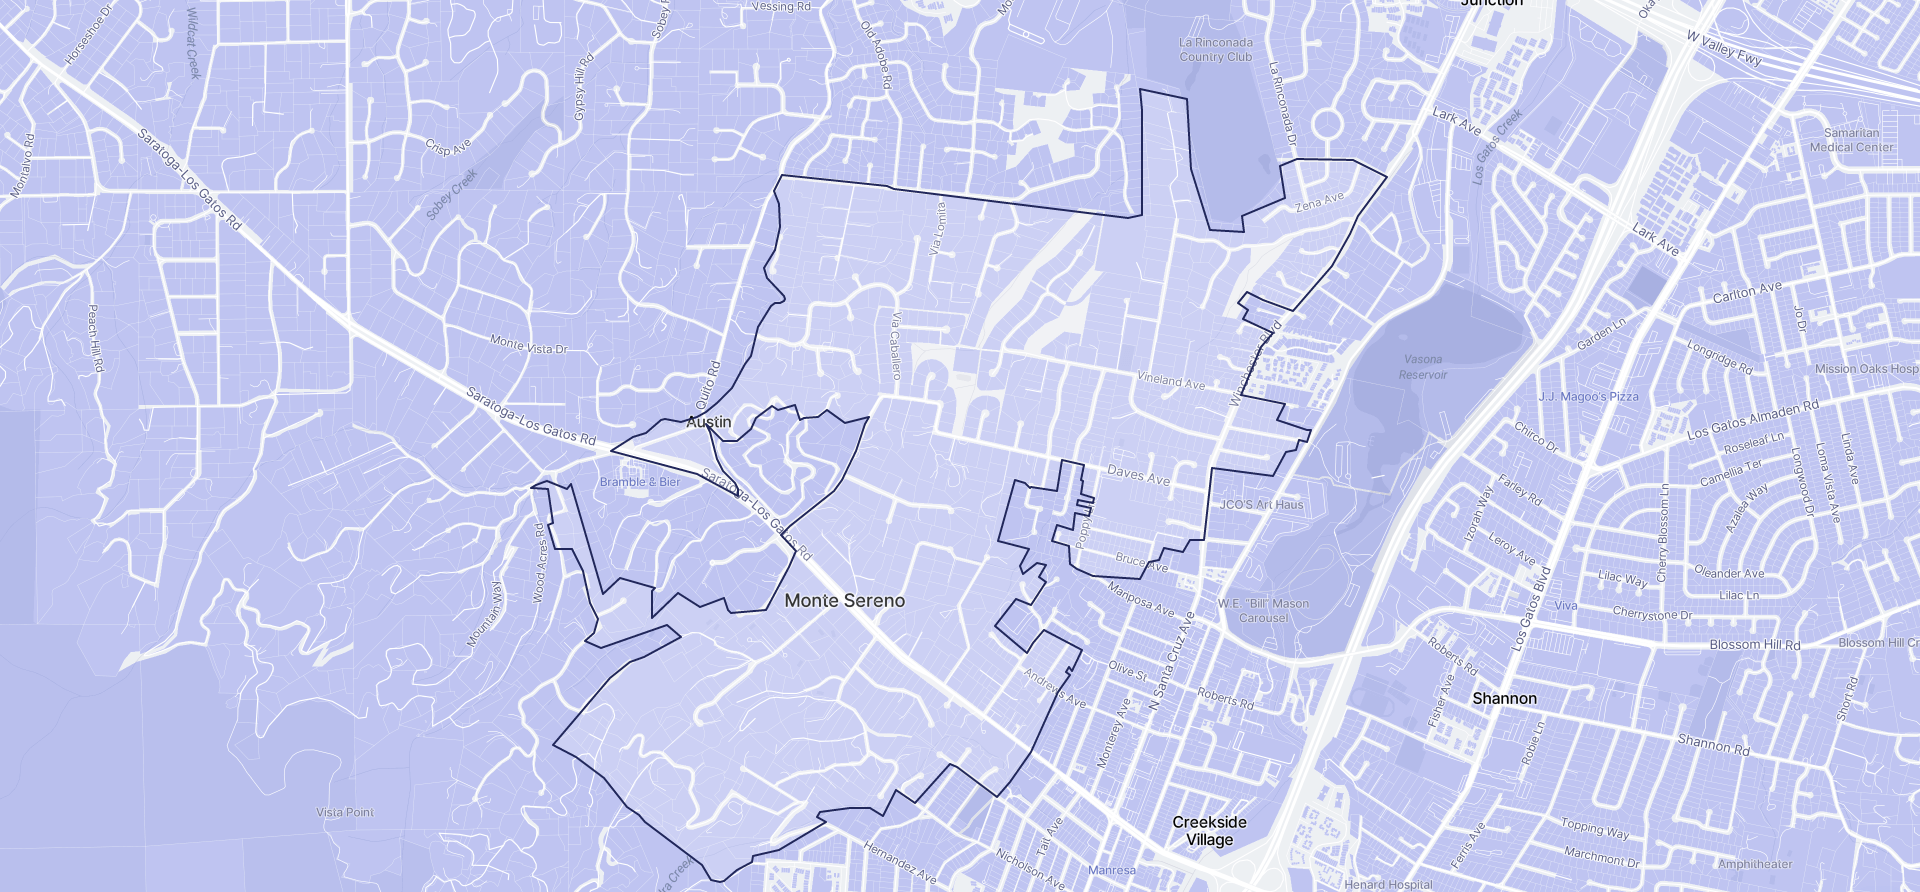 Image of Monte Sereno boundaries on a map.